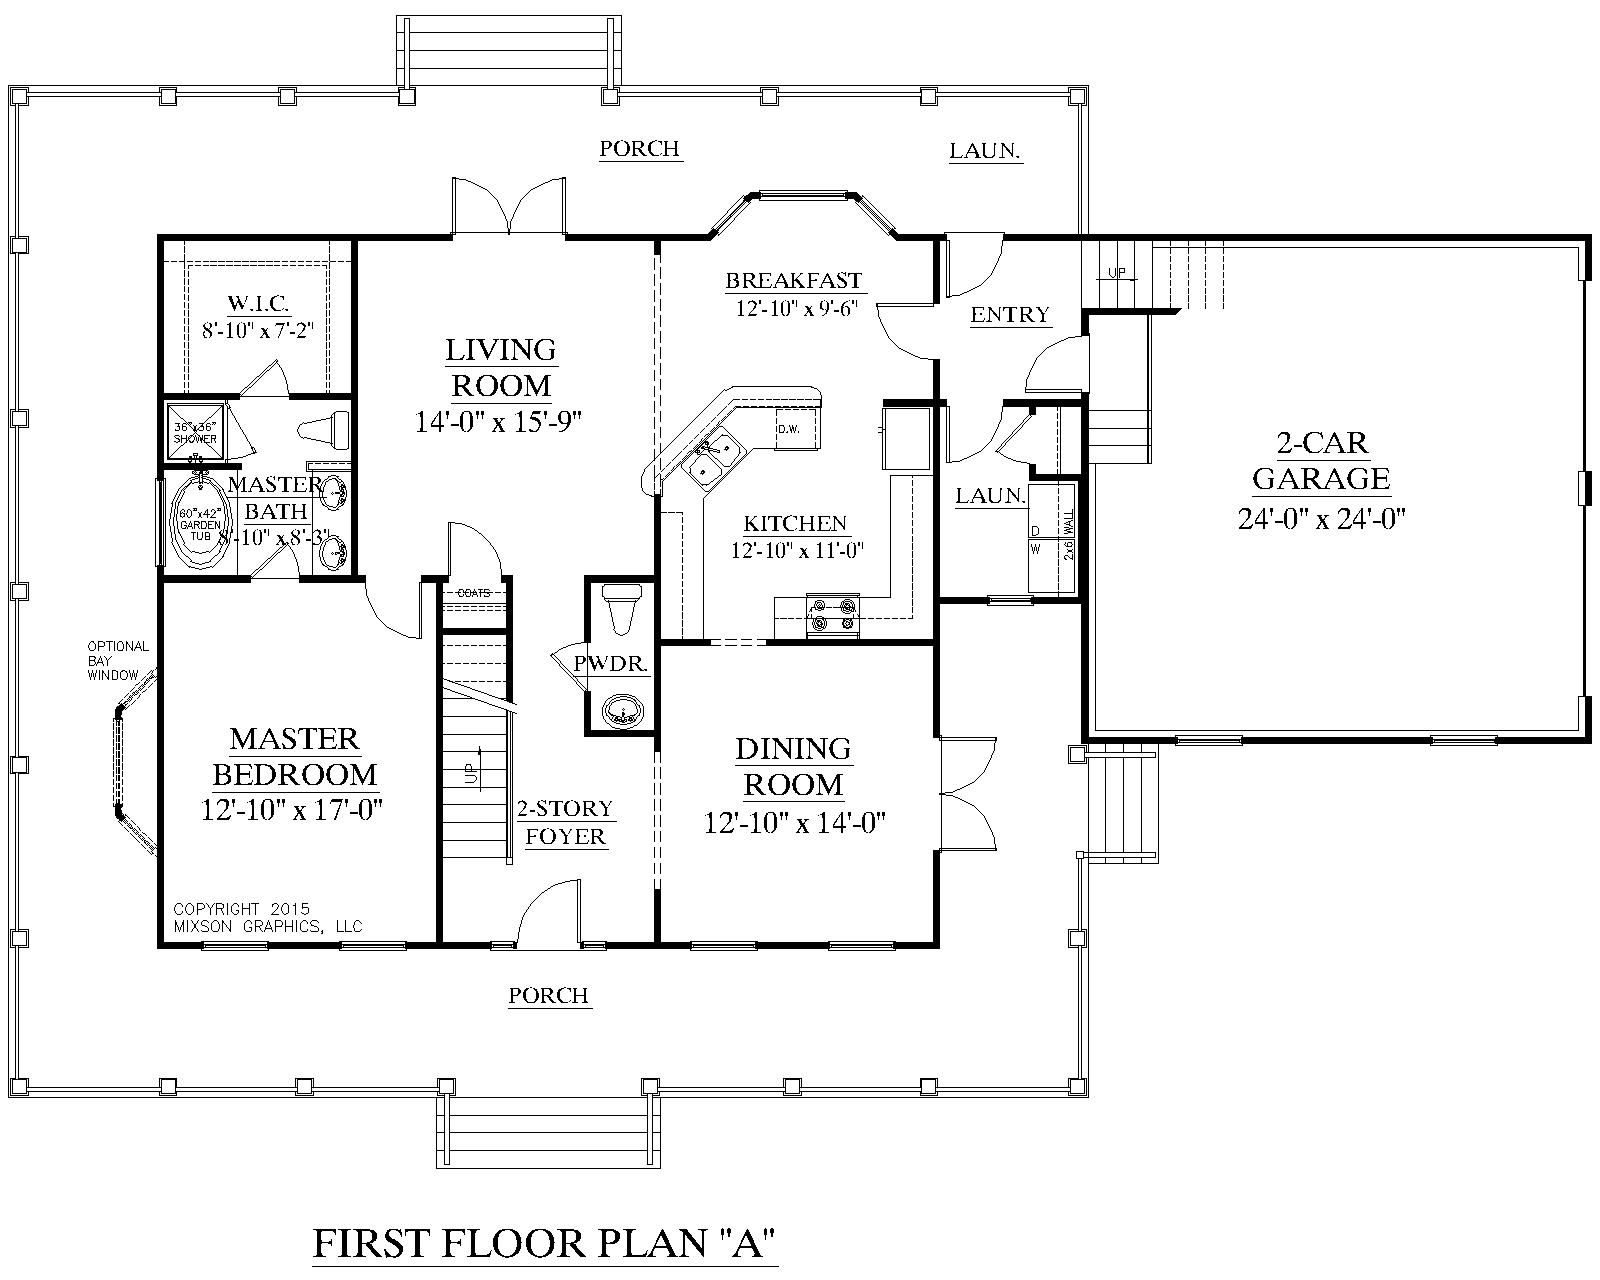 Incroyable Home Plans With Master Bedroom On First Floor